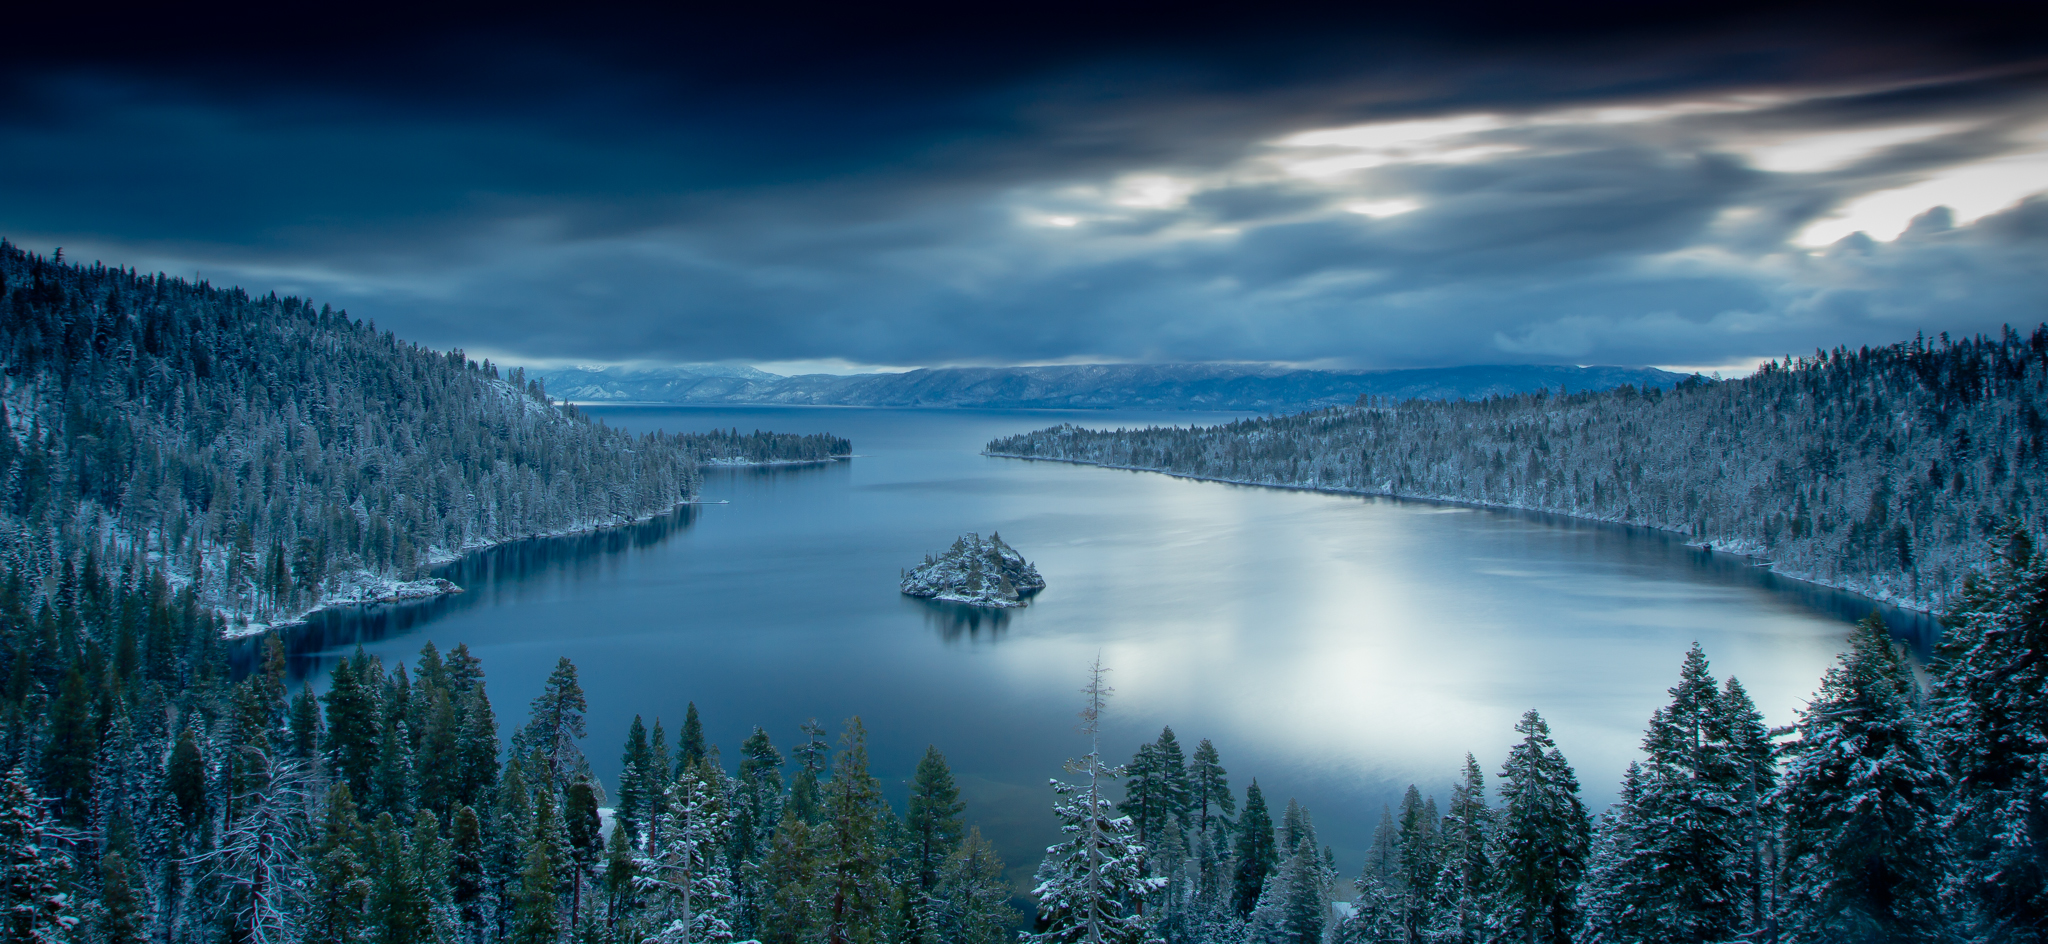 emerald bay in lake tahoe is the main attraction for photographers. This was made before sunrise while the moon was still out. The long exposure provides a silky smooth surface for the water, and provides the movement in the clouds.